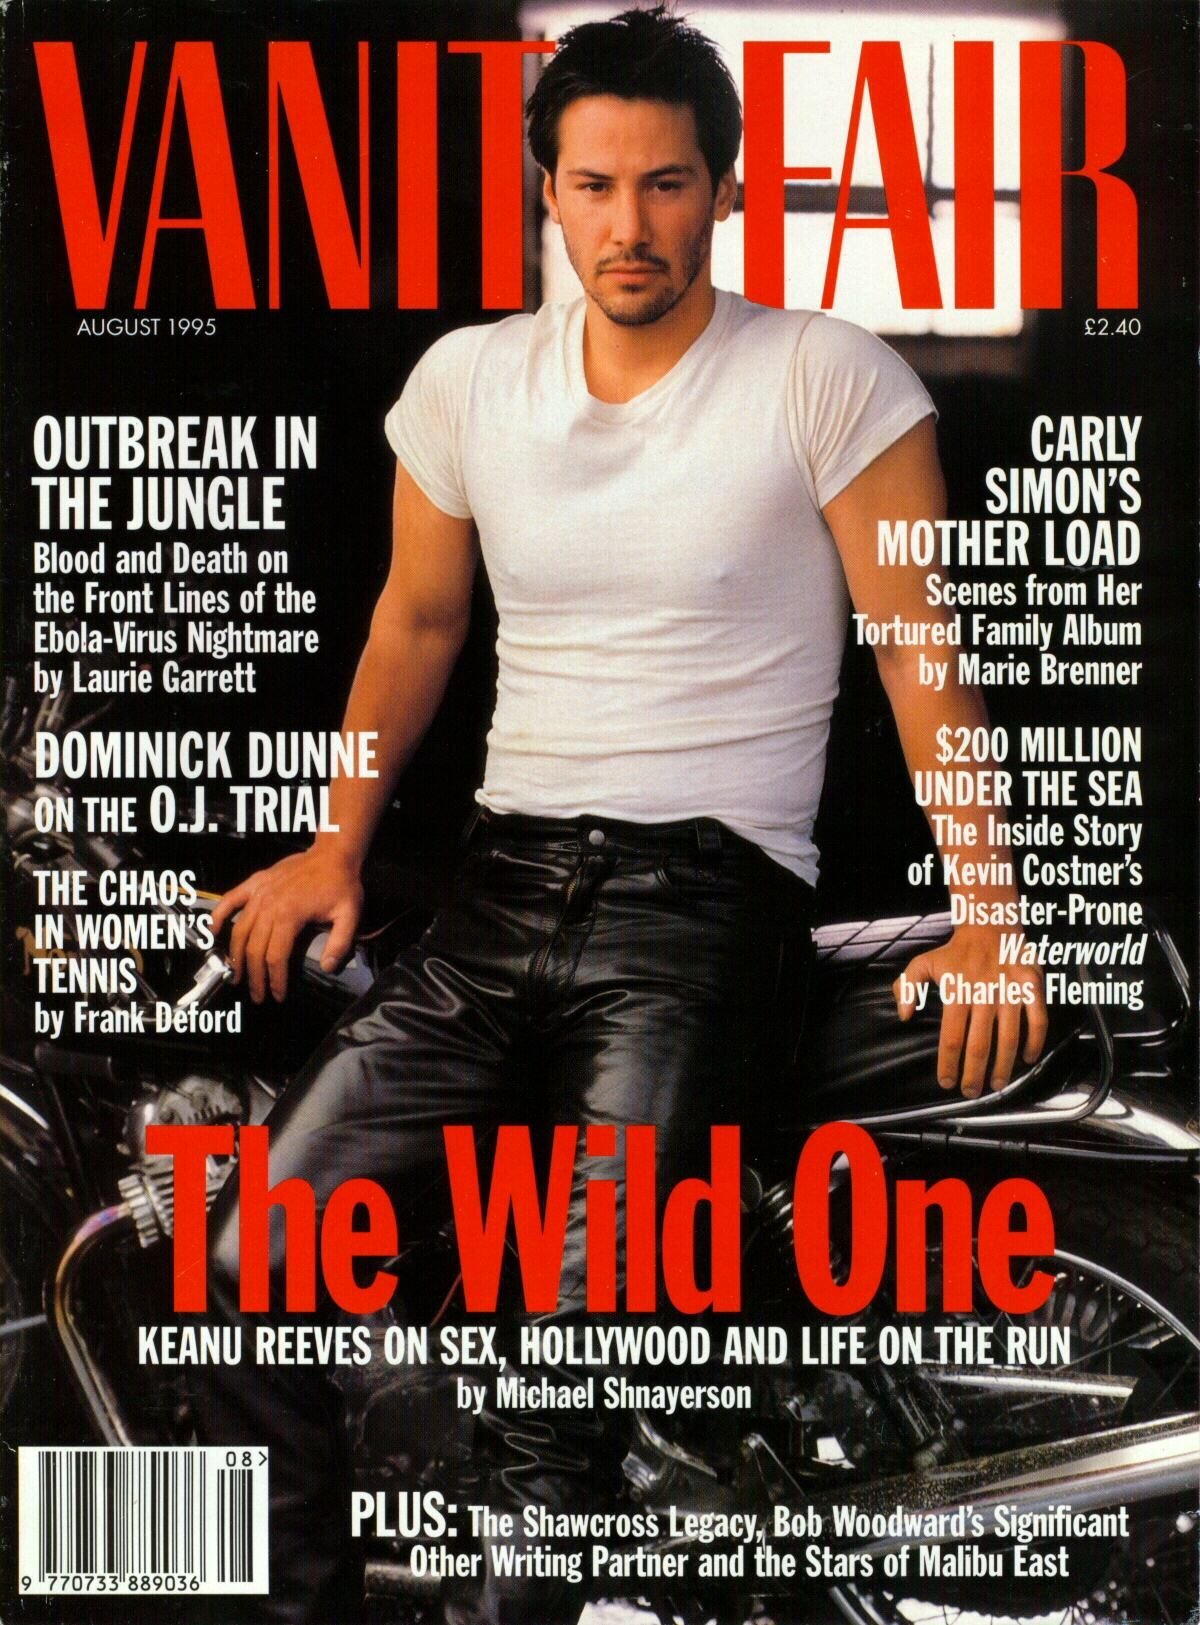 Image result for in what magazine is keanu reeves in leather pants on a bike in magazine